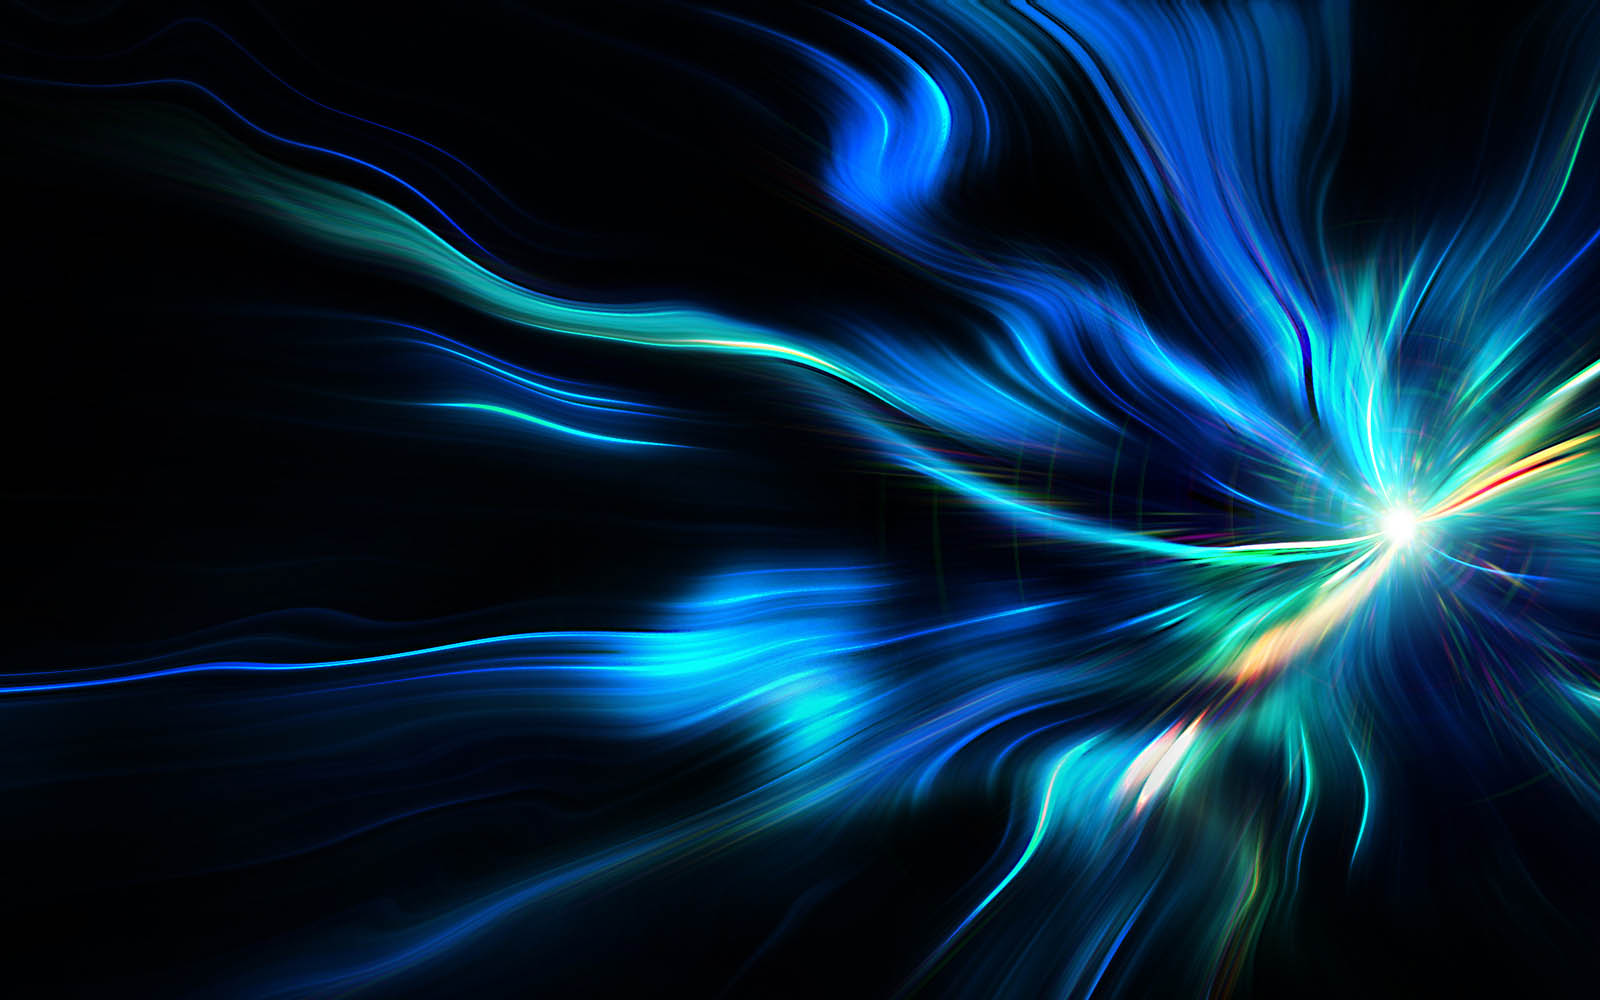 wallpapers for desktop 3d - photo #2